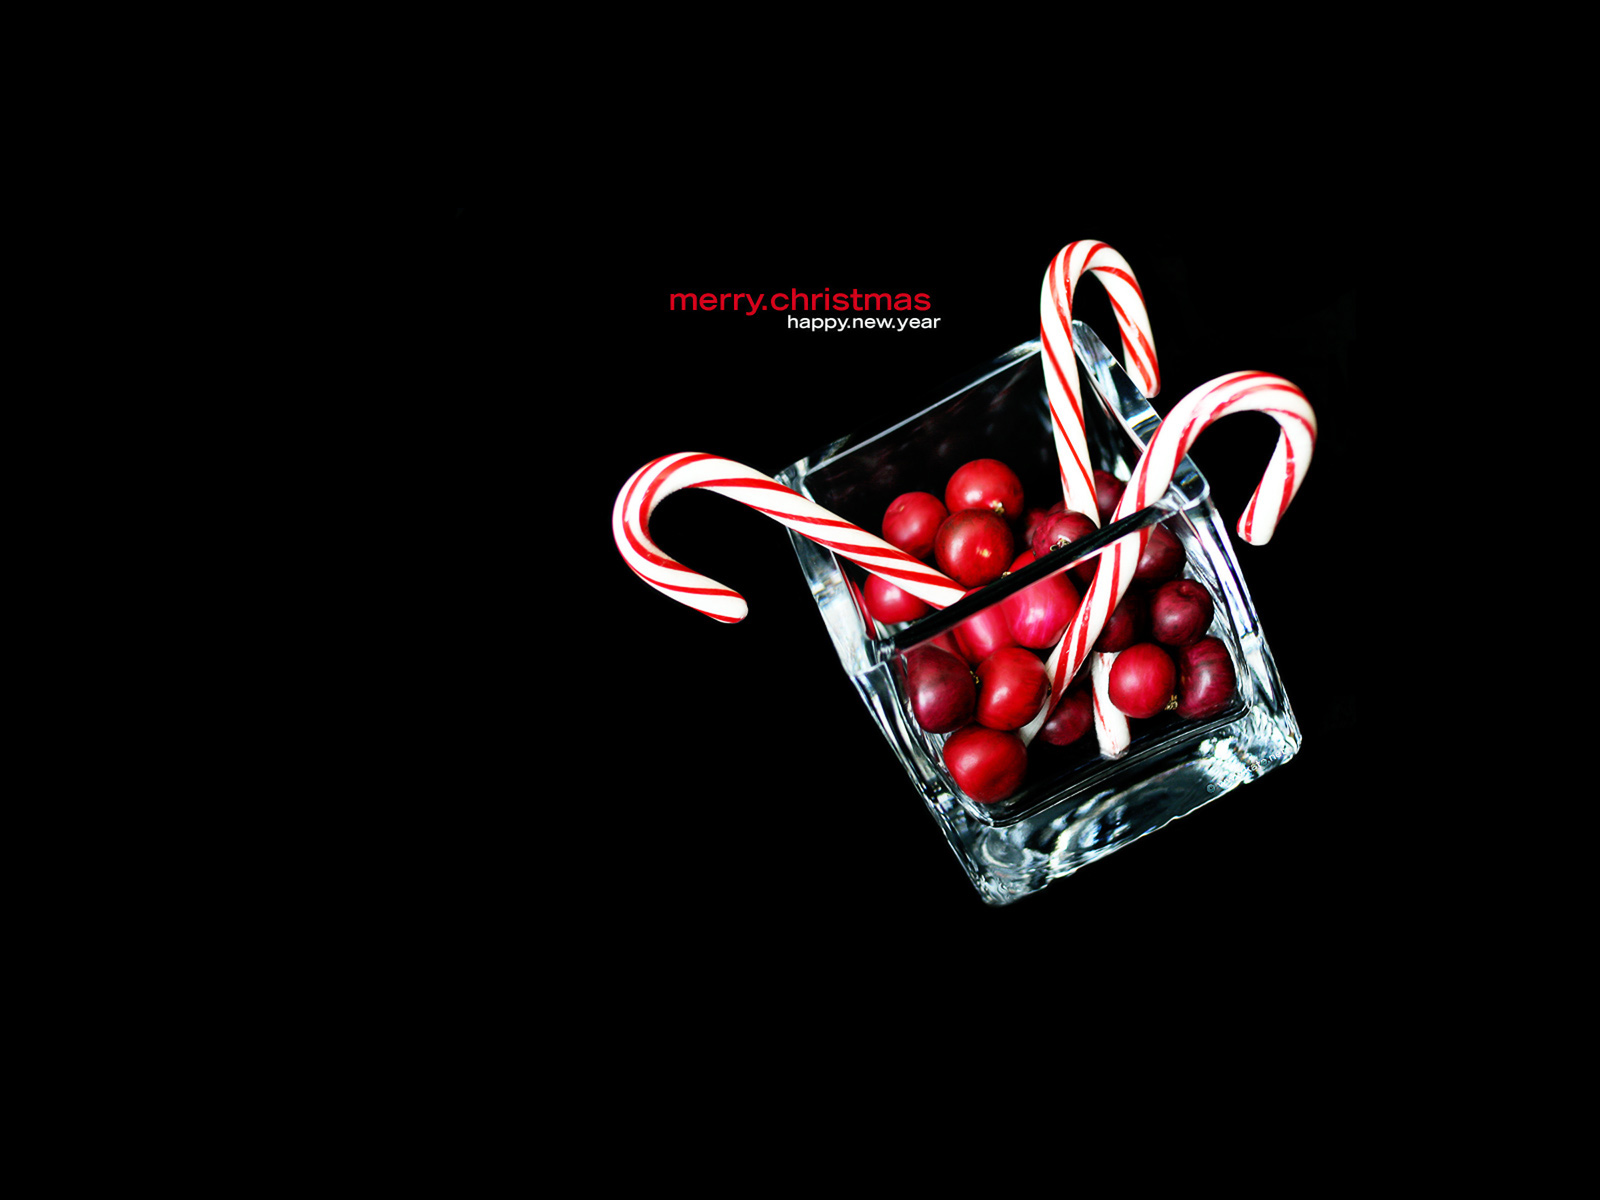 Christmas Candy Cane Wallpapers [HD] Wallpapers High Definition 1600x1200